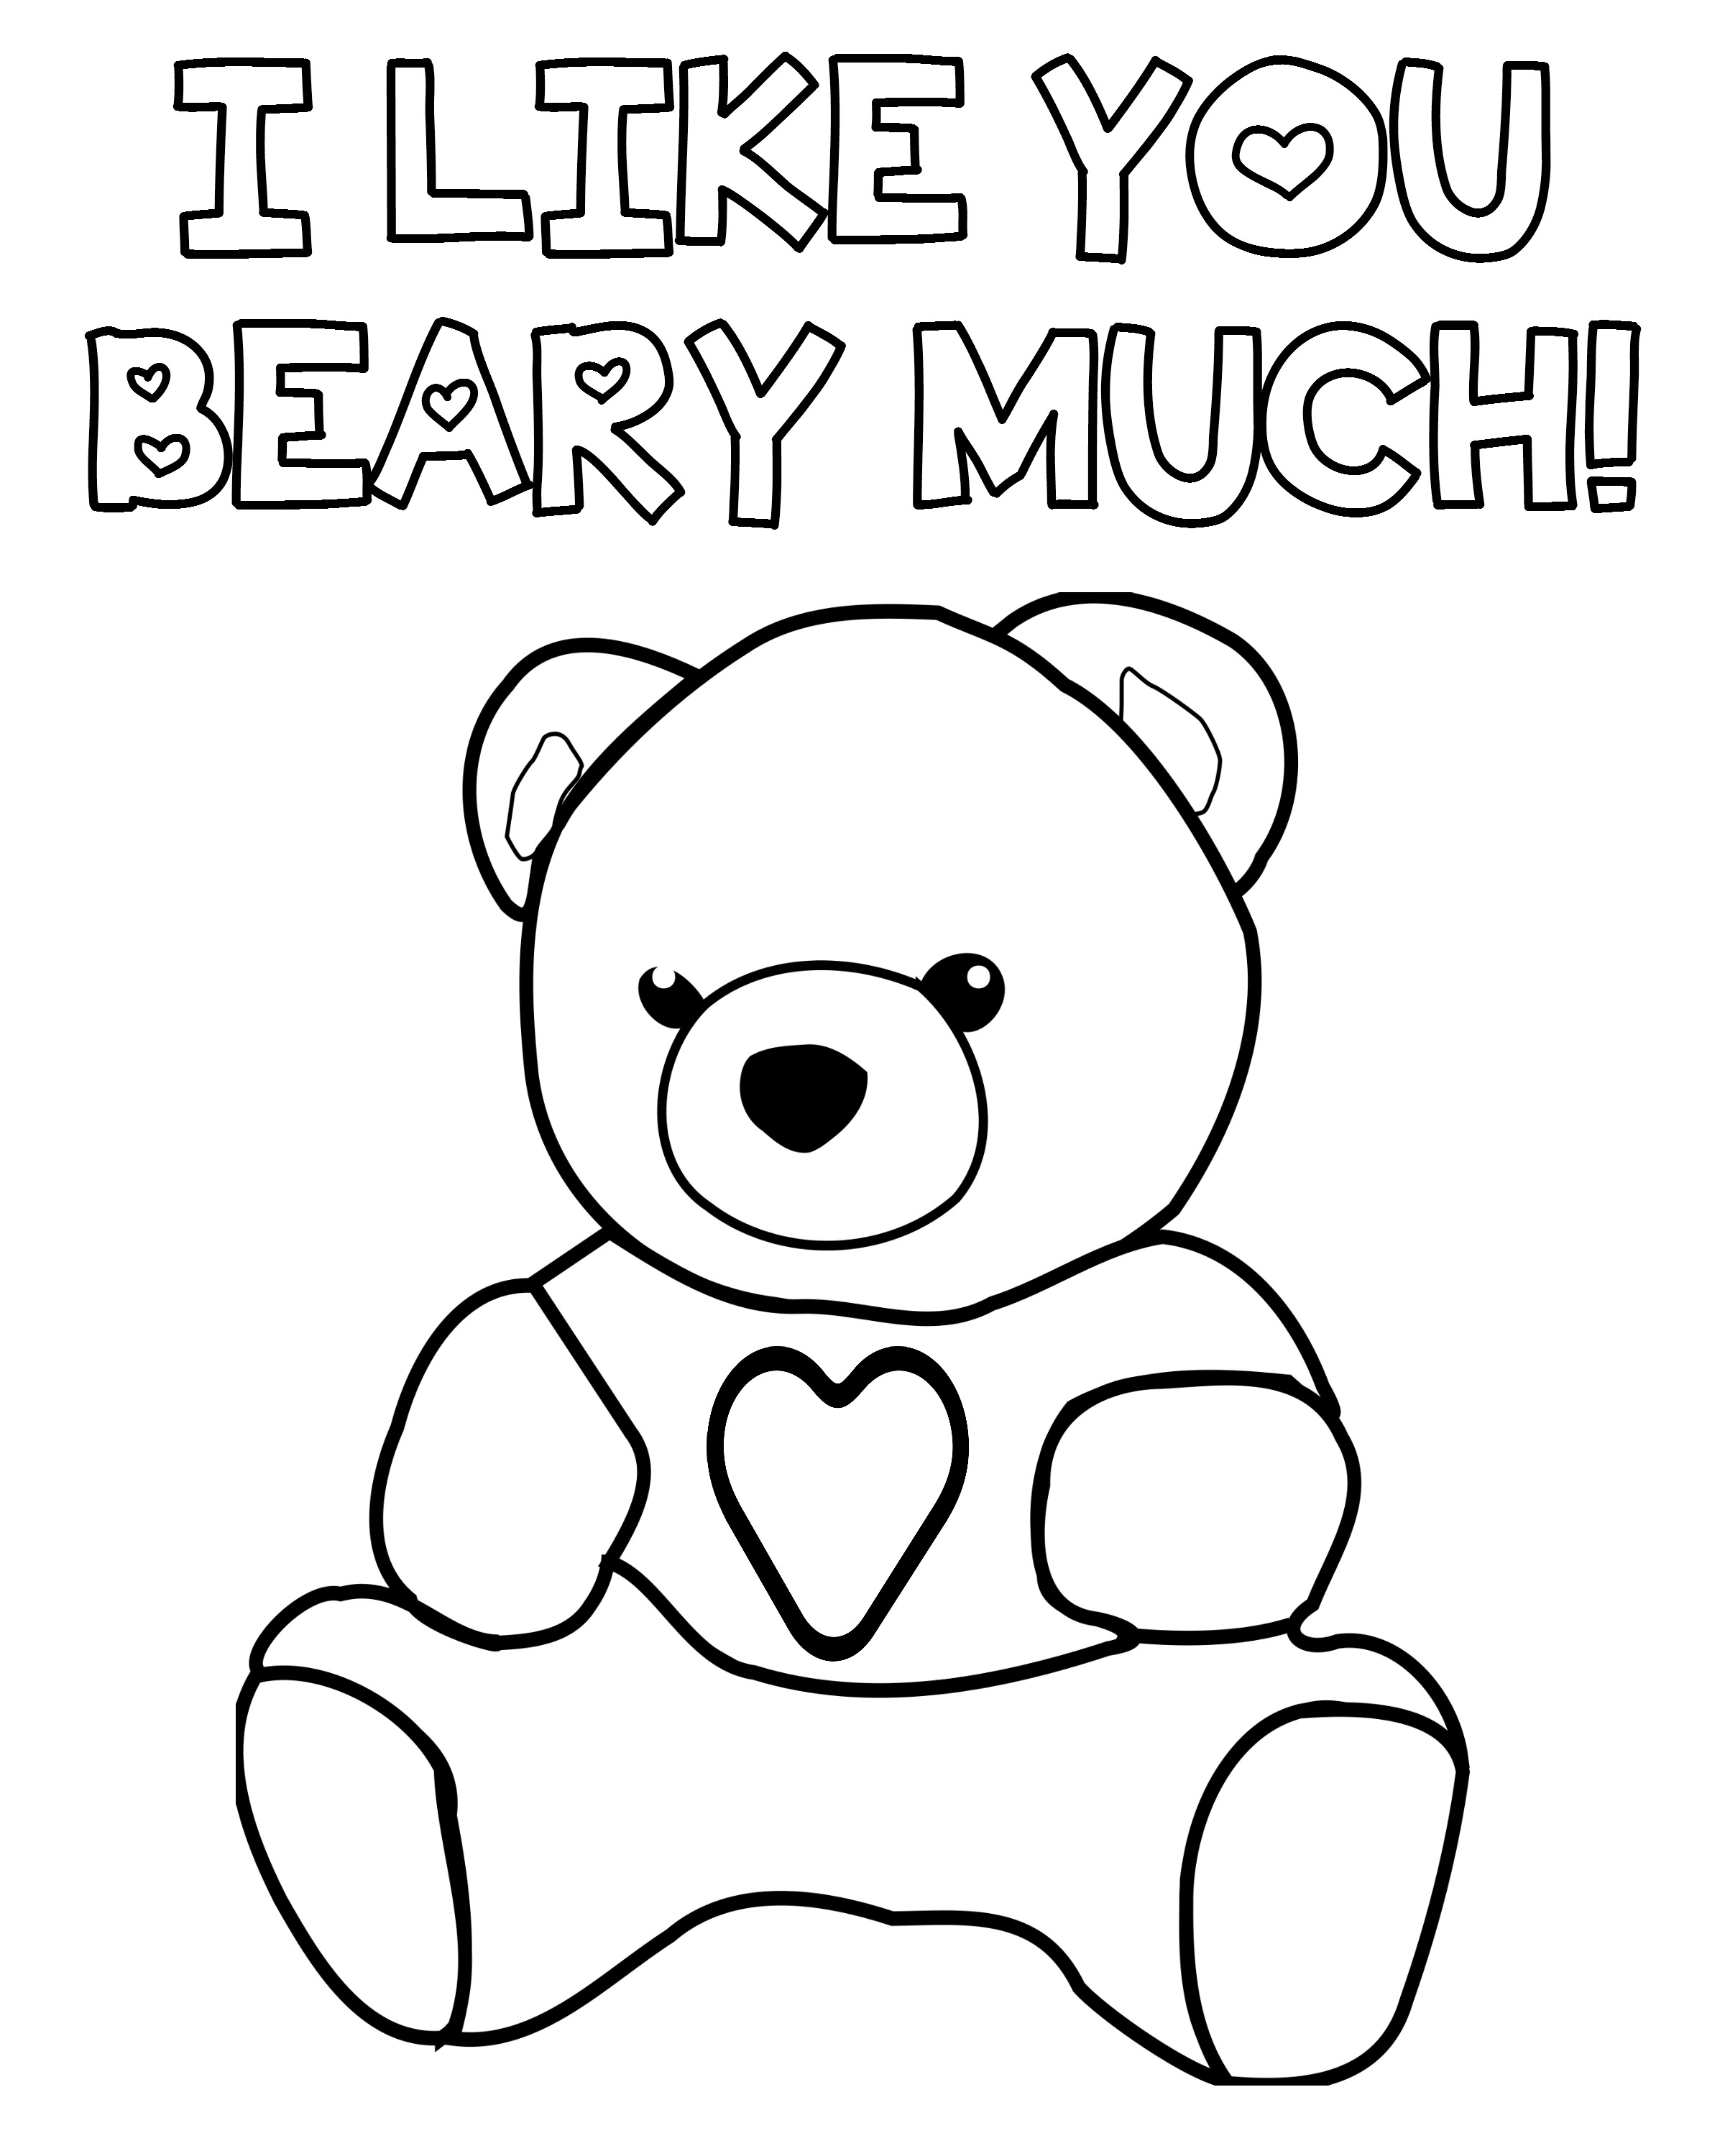 I Like You Beary Much - Teddy Bear Valentine\'s Day Coloring Page ...